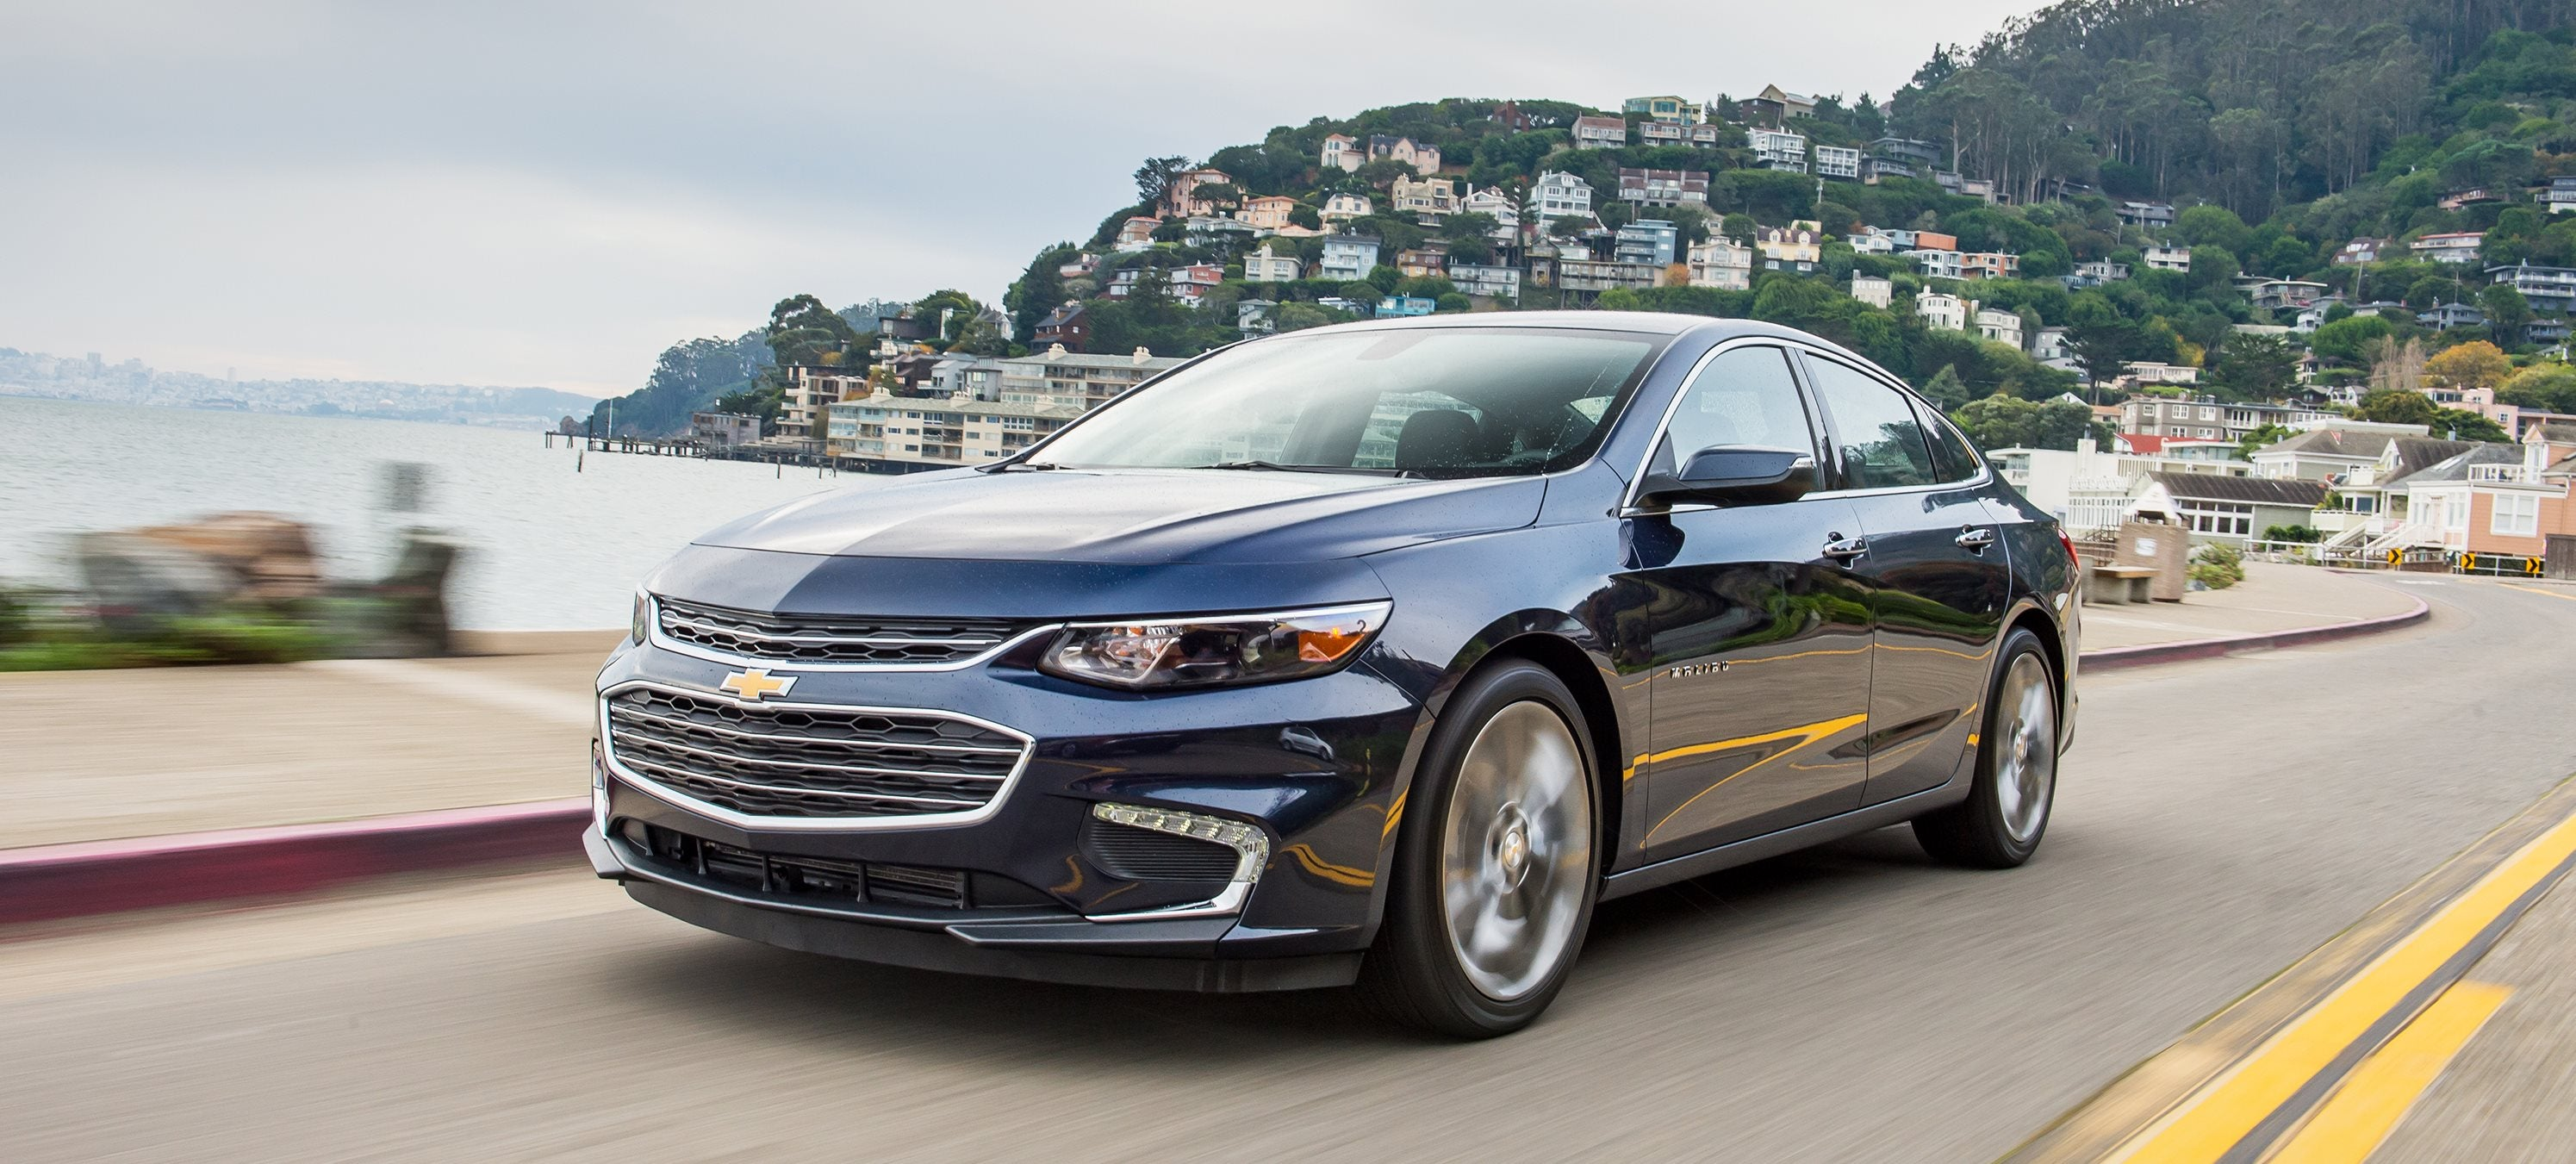 Test Drive A 2016 Chevy Malibu Or Impala